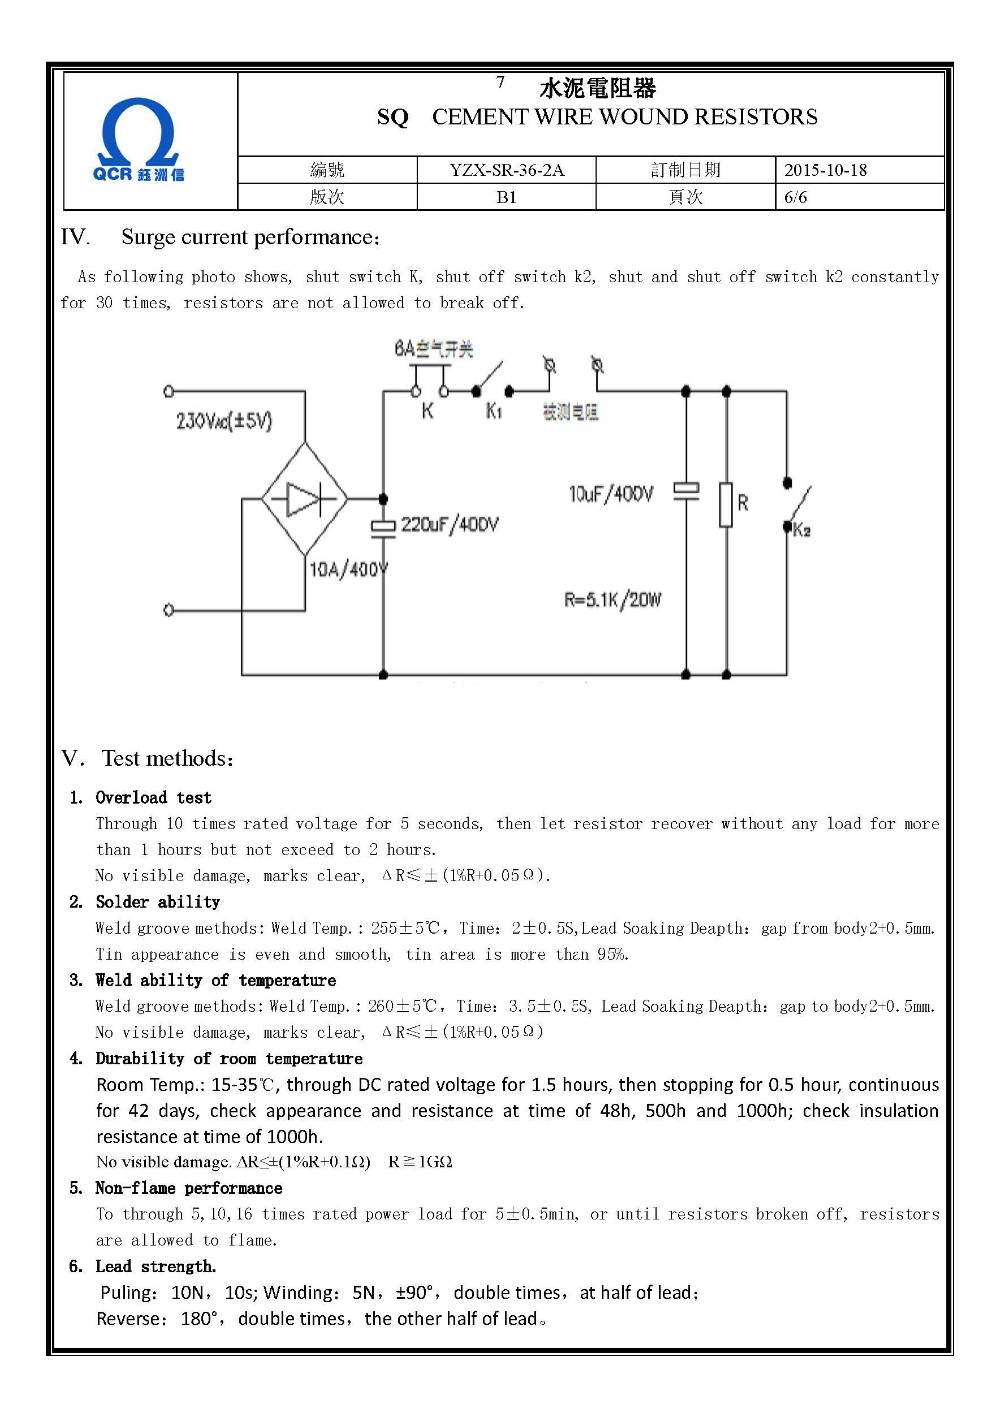 hight resolution of qcr thermal fuse cement resisrots sqp 25w 3 3r power amplifier led ballast